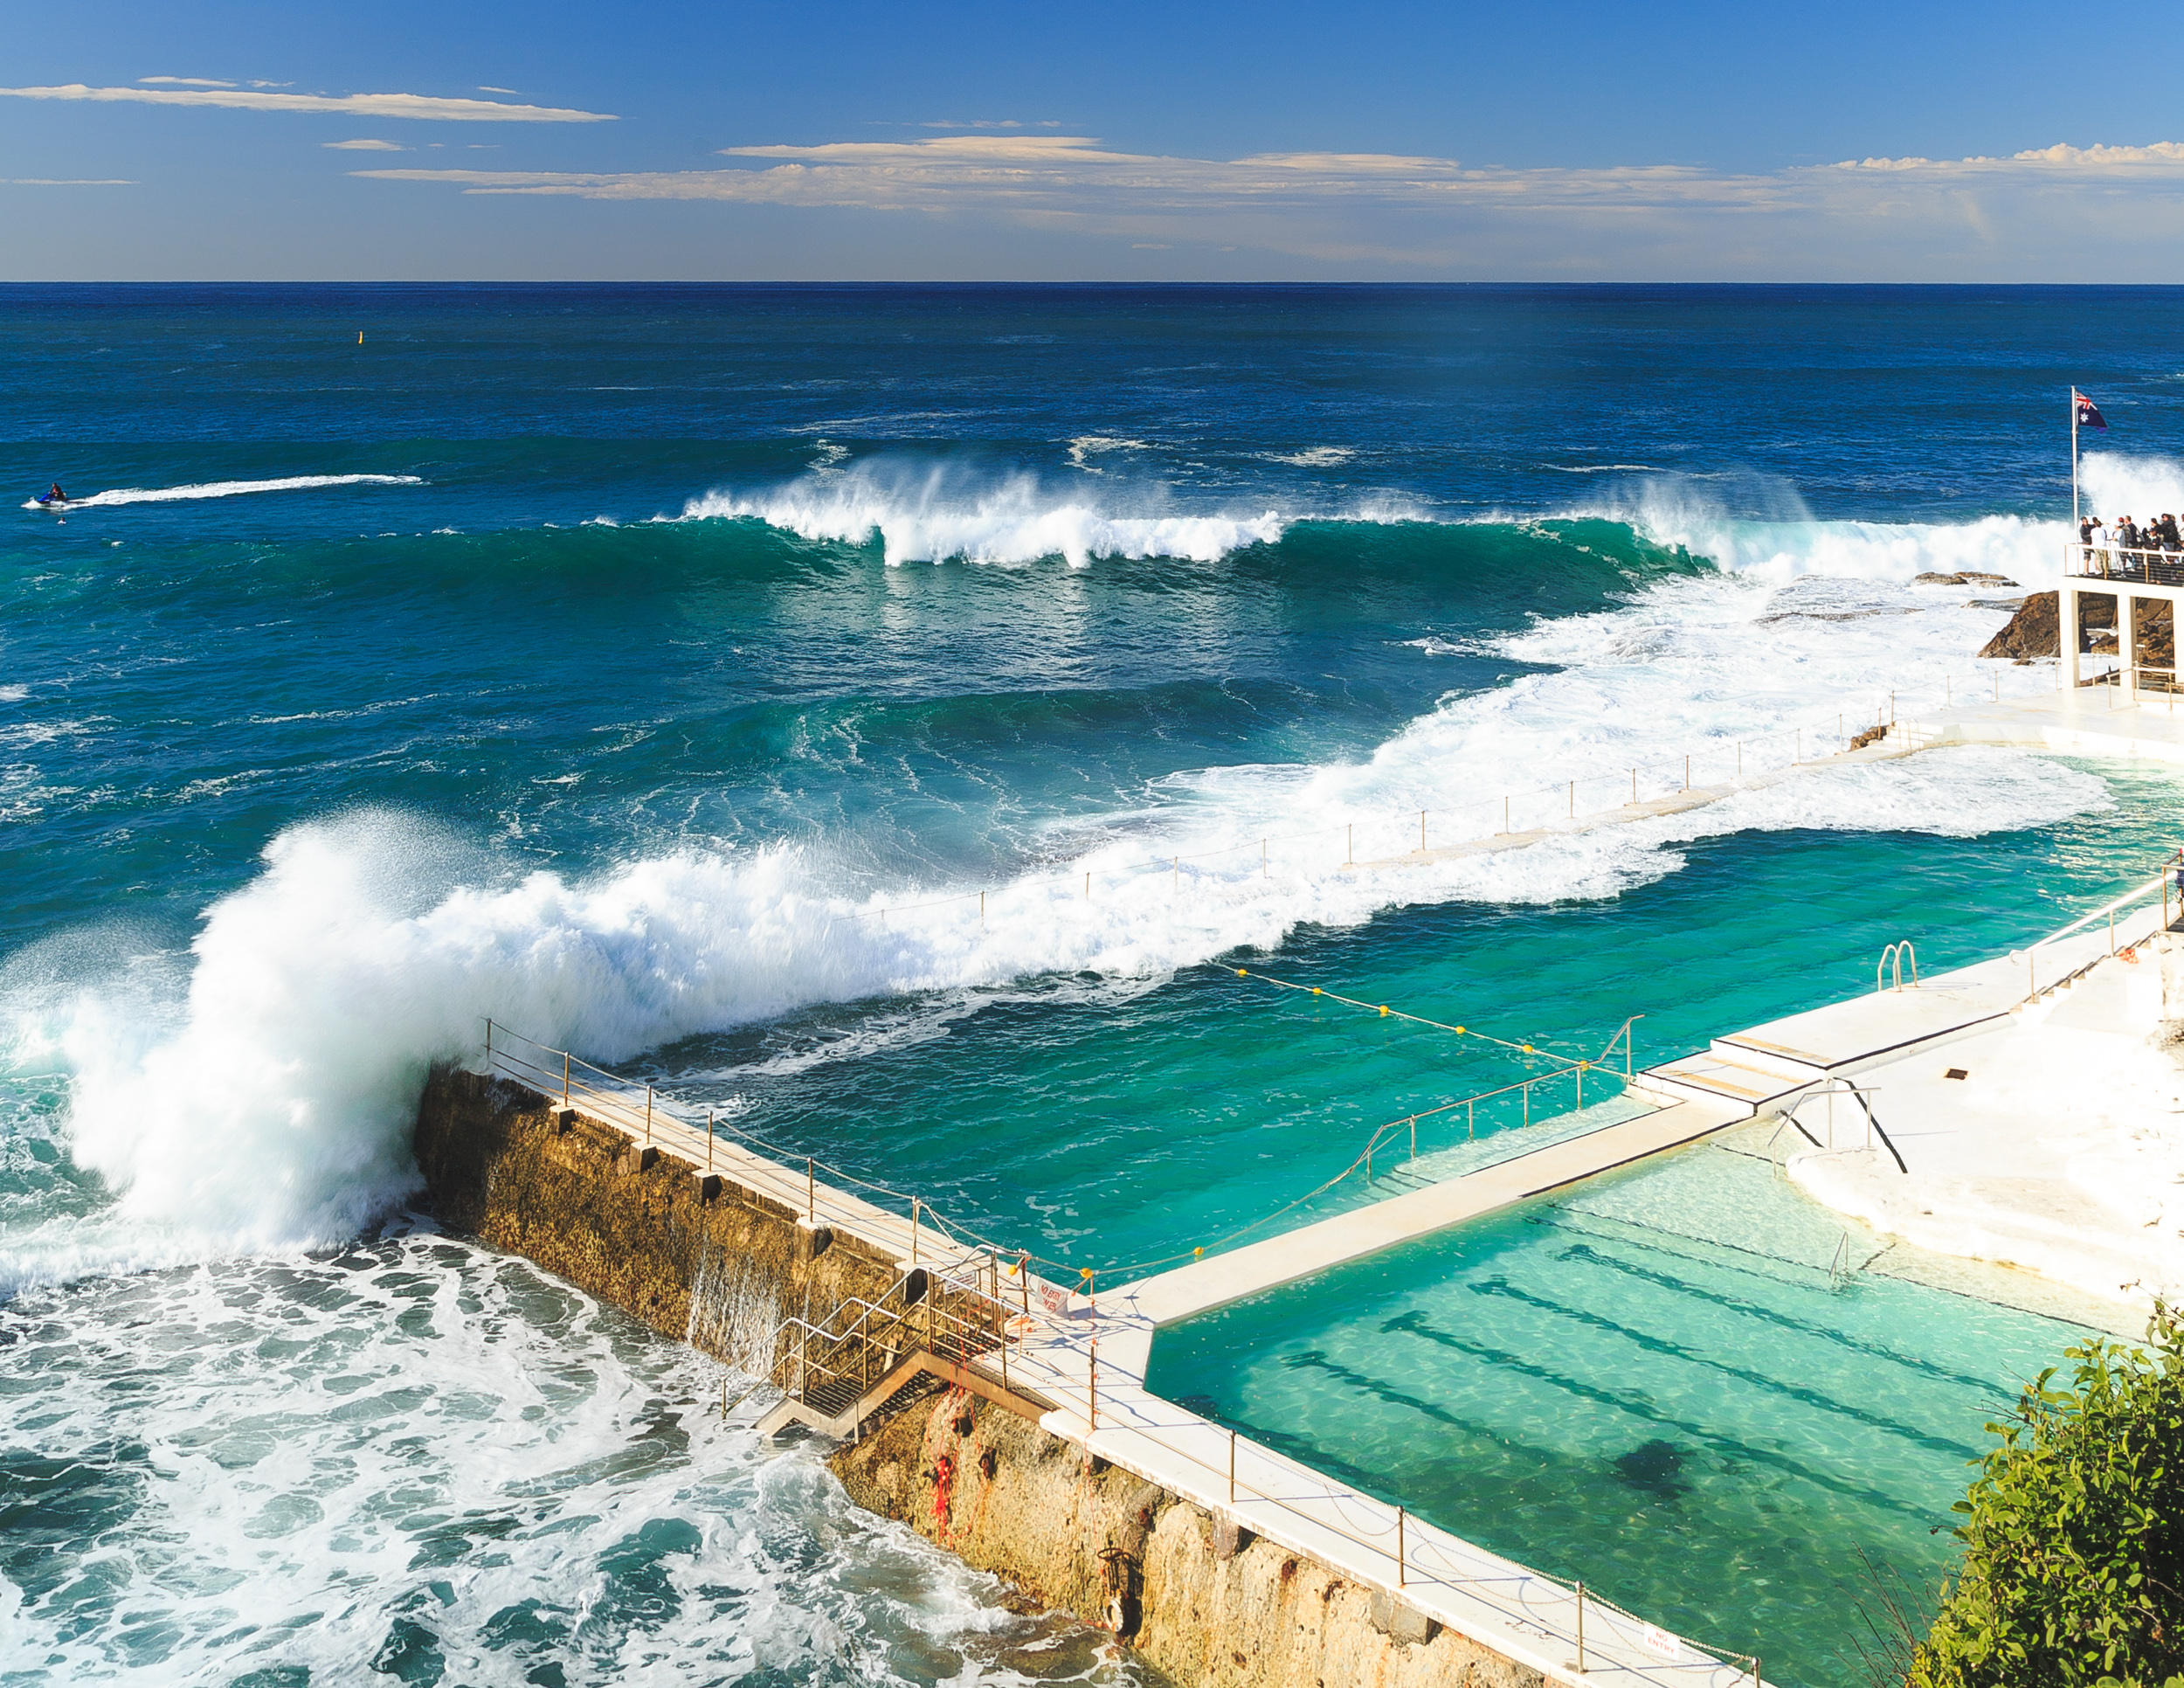 Cheap things to do in Sydney: The view from Bondi Icebergs